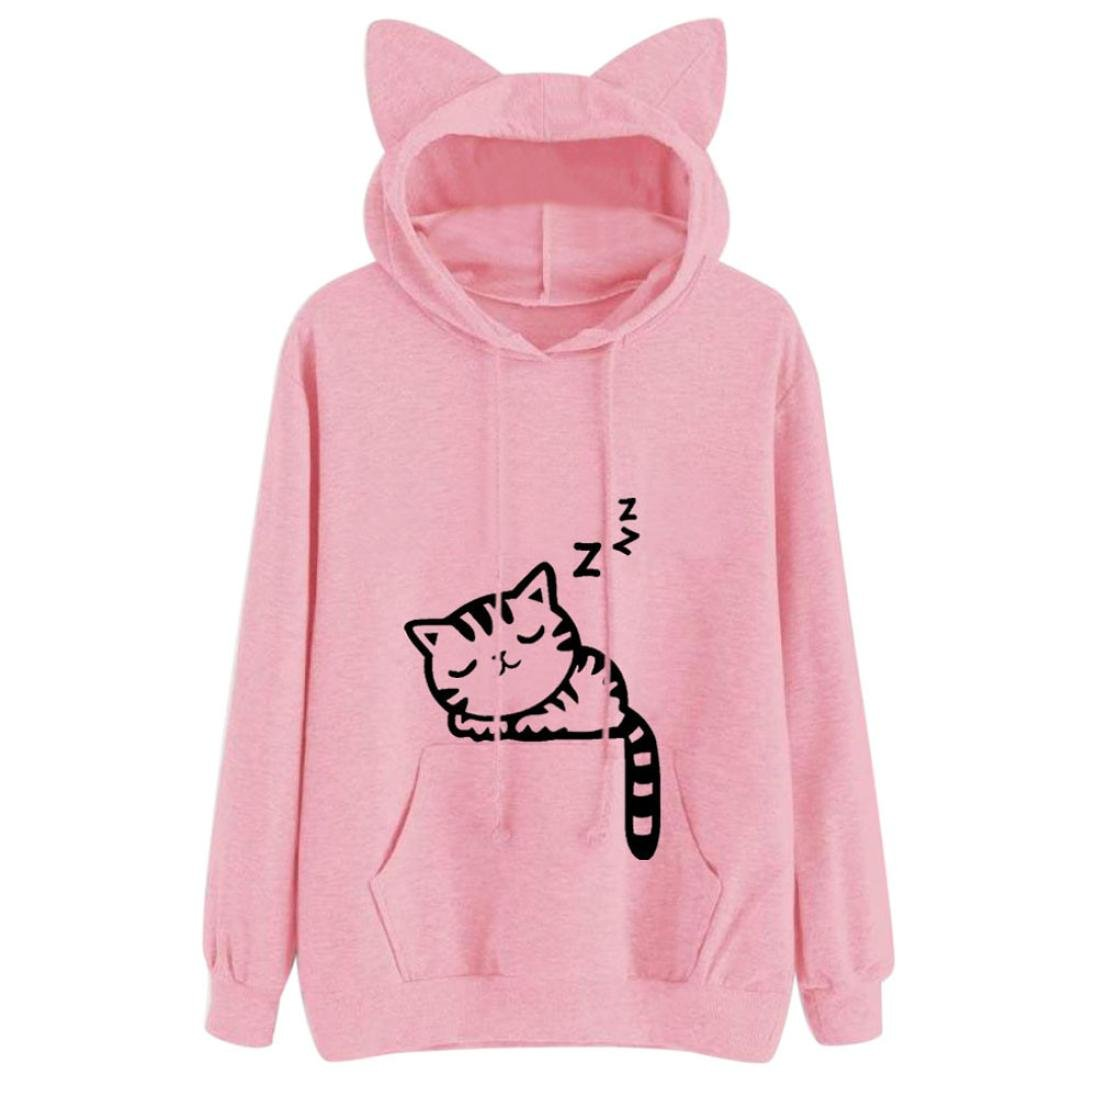 Top19  Womens Hoodie New Hot Sale Fashion Loose Christmas Casual Cat Long  Sleeve Hoodie Sweatshirt Outwear Pullover Tops Blouse by Neartime (Pink 07648e637